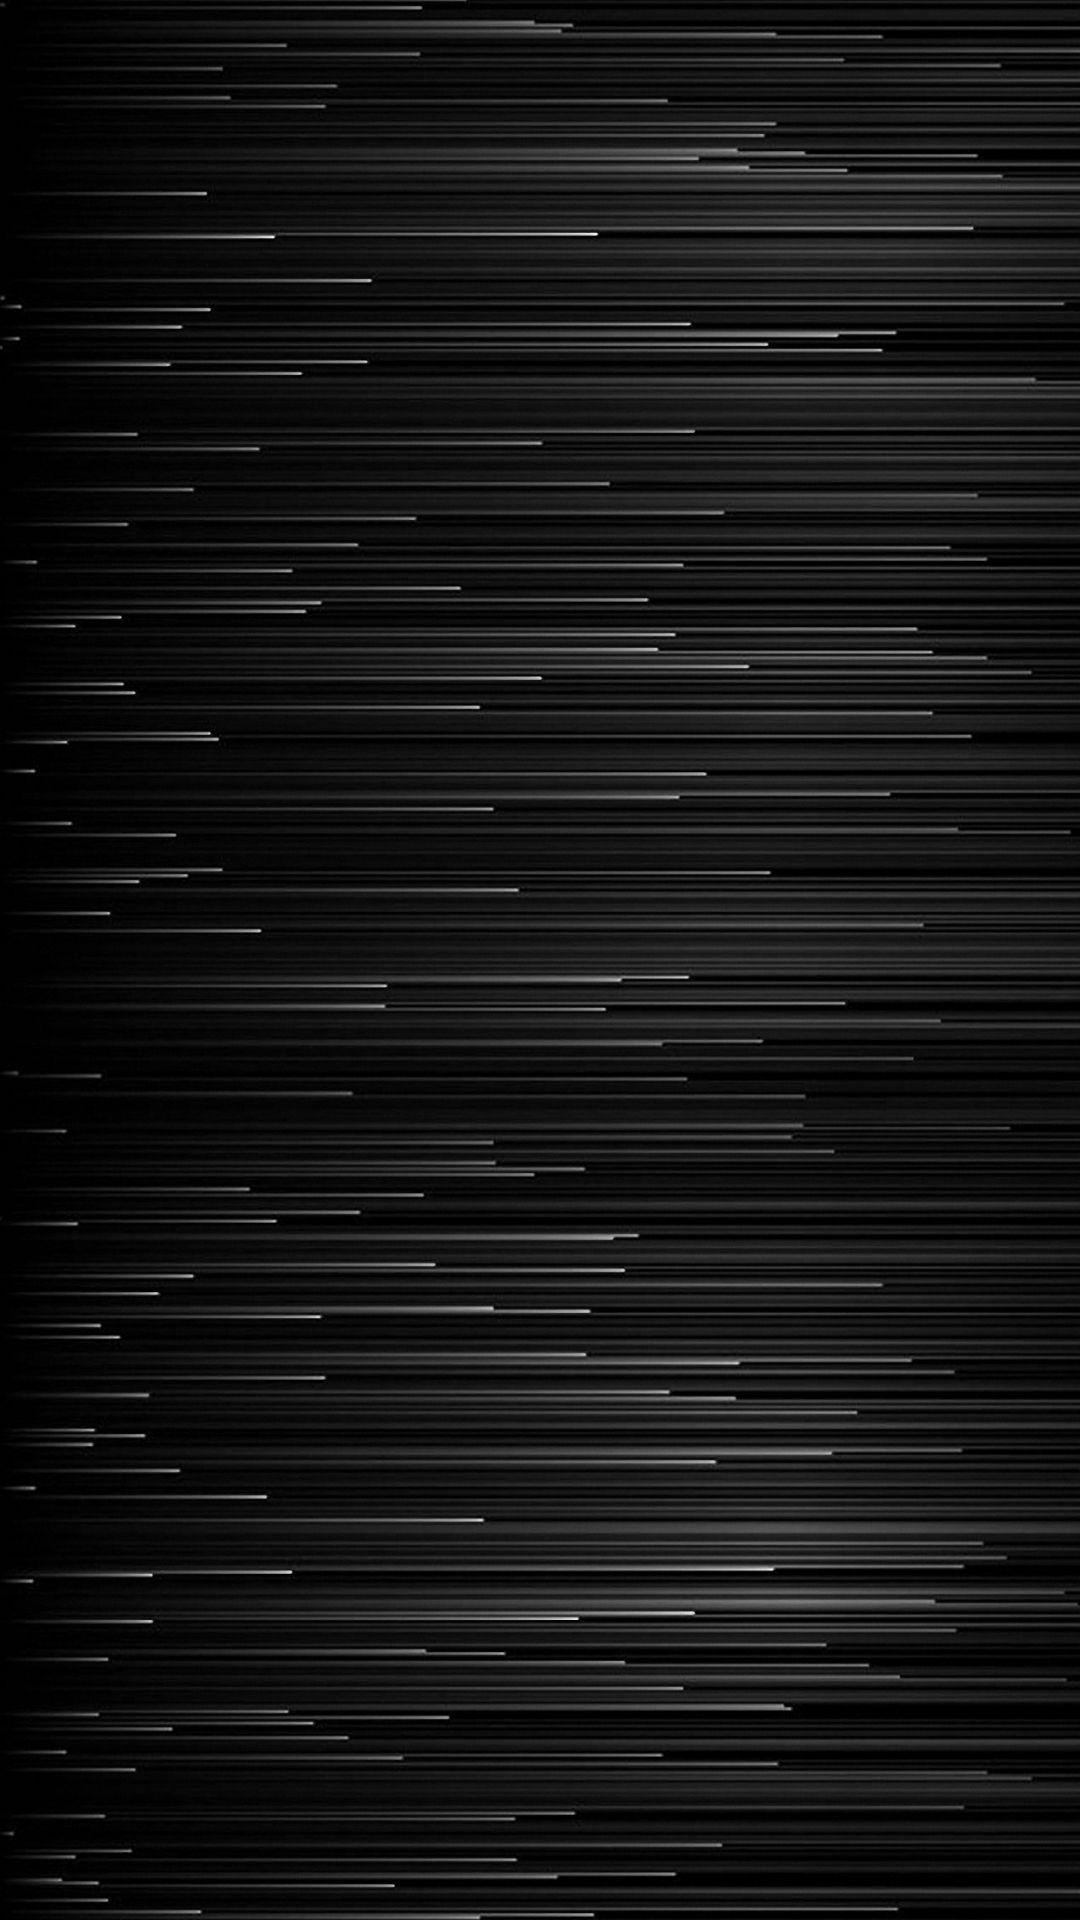 Best D Black iPhone x wallpaper hd